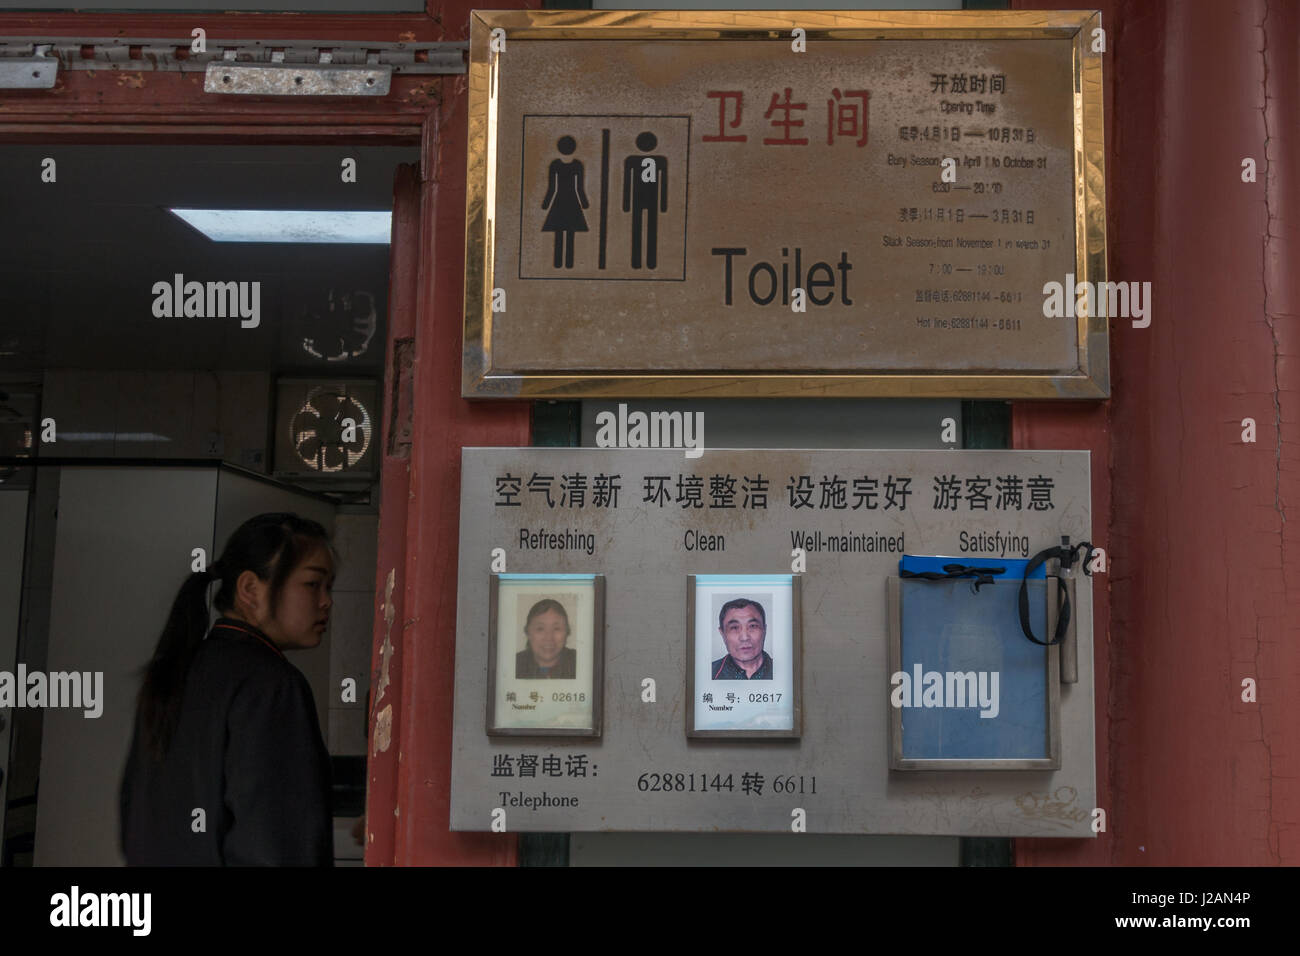 Funny Chinglish: Toilet sign poorly translated into English with funny meaning, Beijing, China - Stock Image